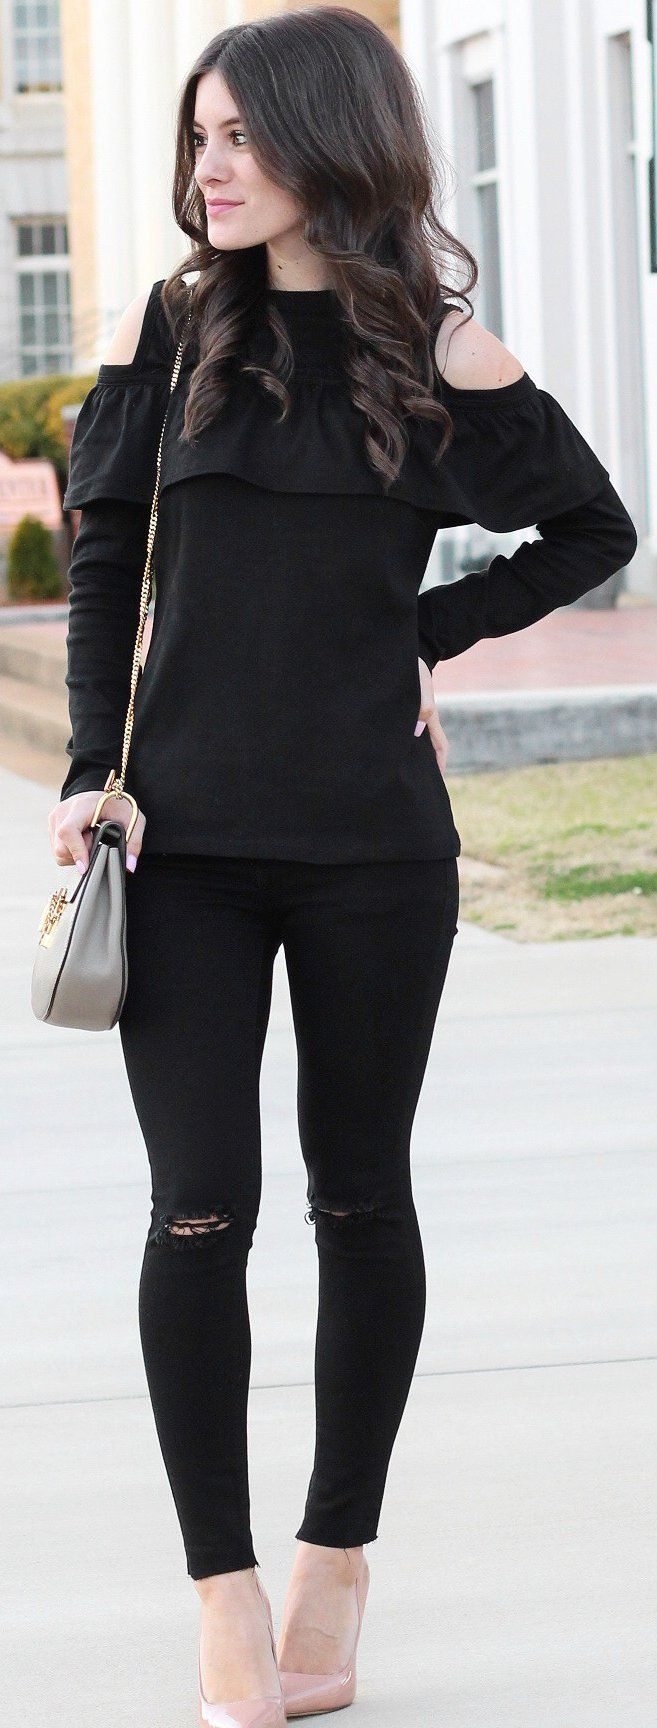 Black Open Shoulder Knit / Nude Pumps / Rippped Skinny Jeans